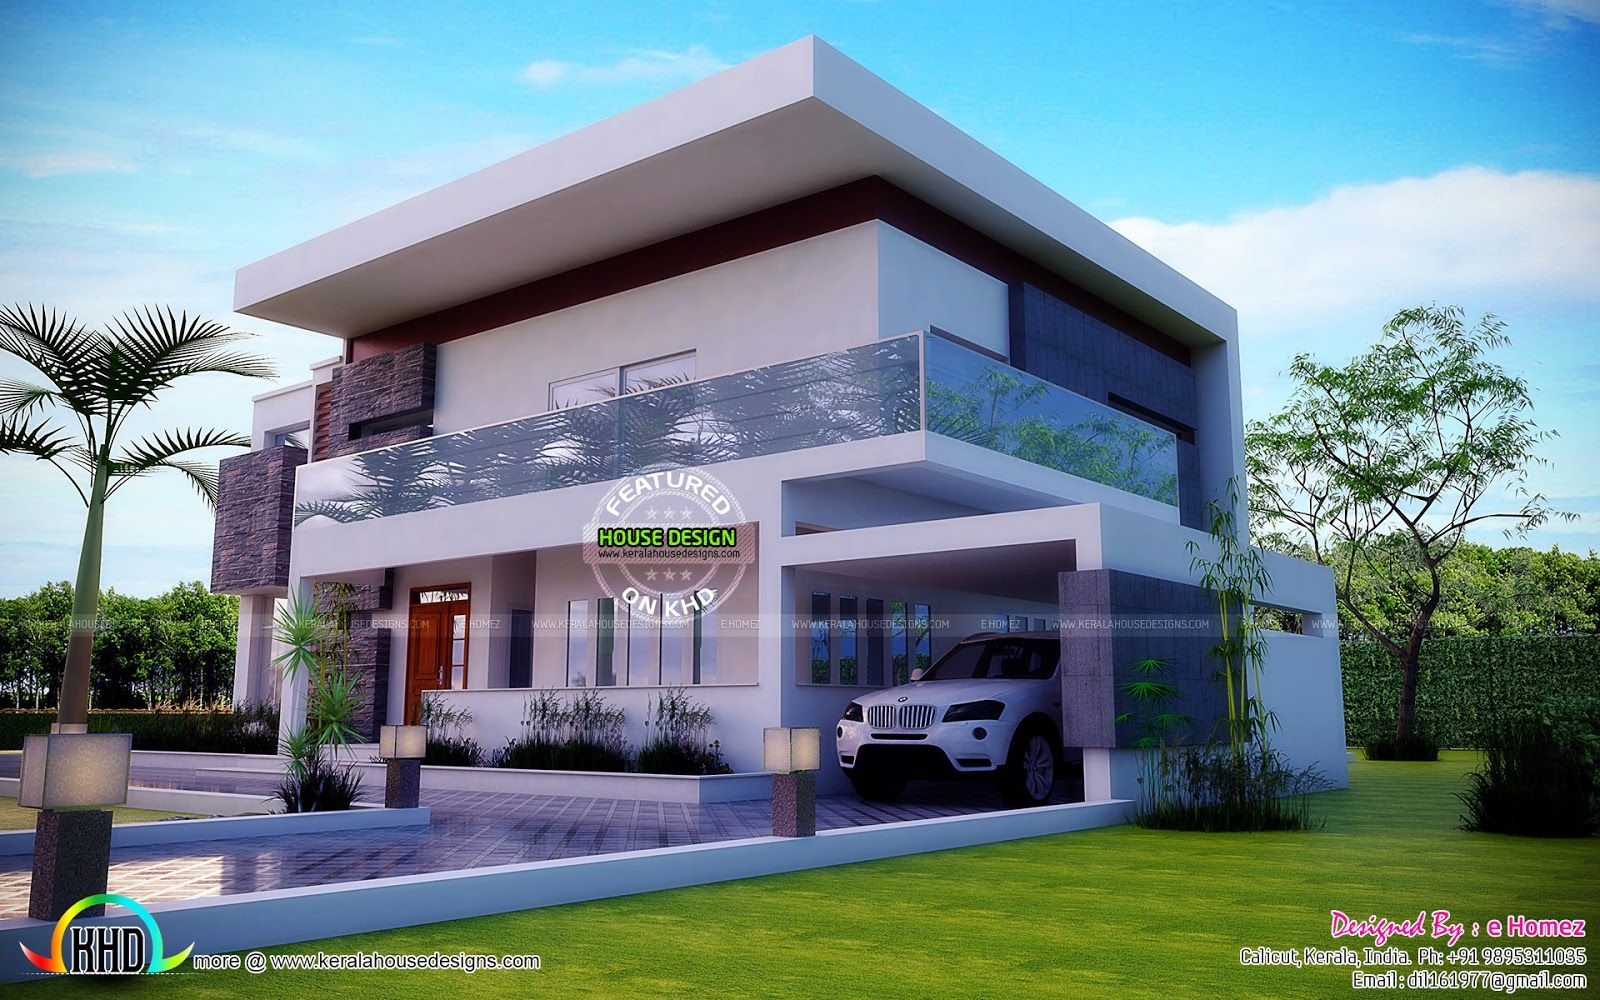 Contemporary model proposed house design in kenya by e homez coimbatore tamil nadu